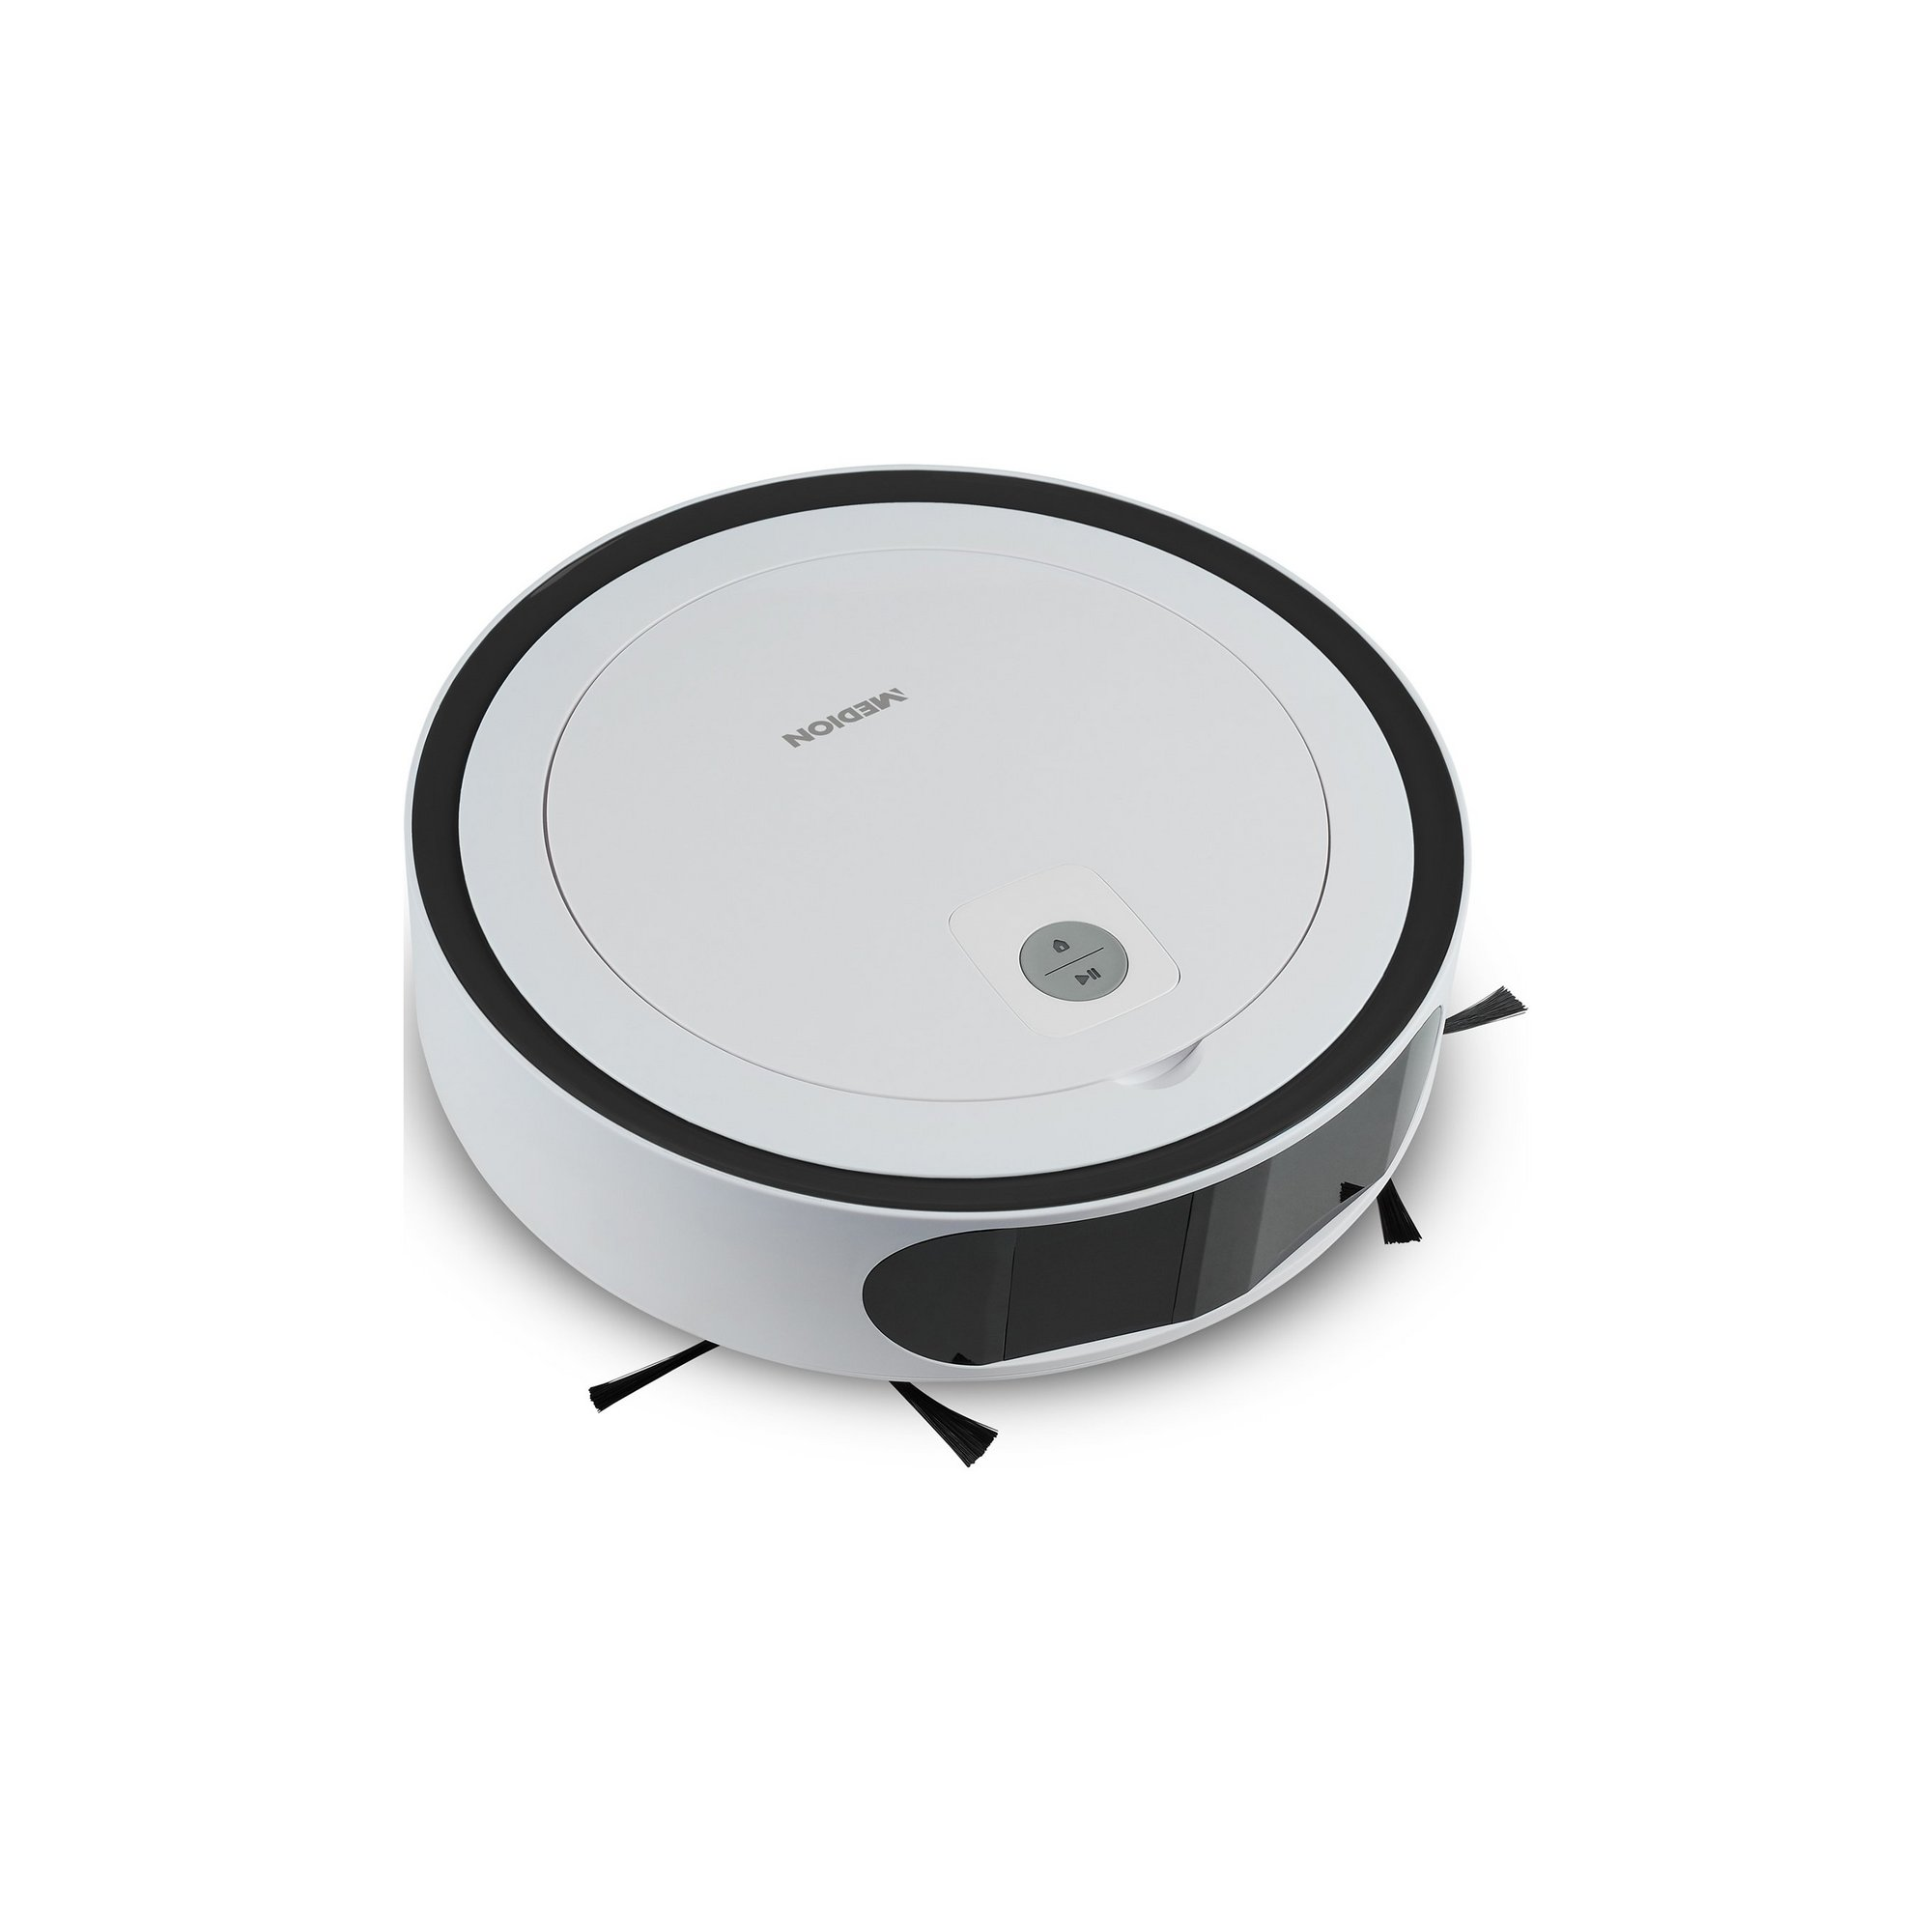 Image of Medion MD 18871 Robot Vacuum Cleaner with App and Alexa Control